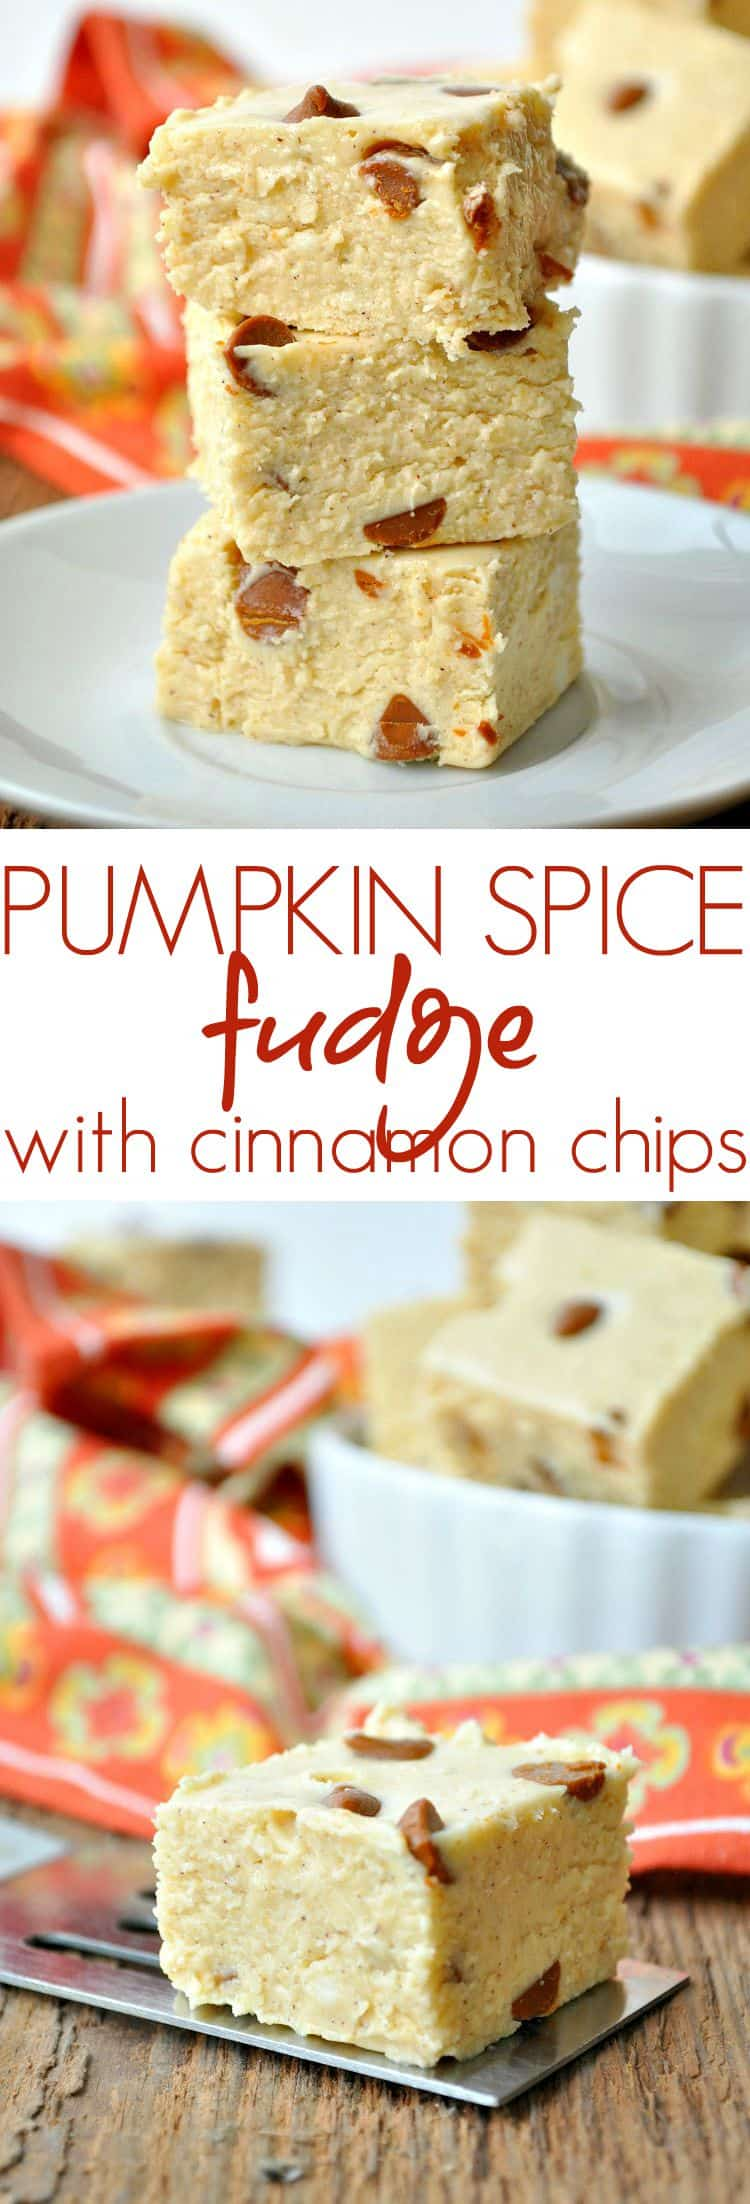 Pumpkin Spice Fudge with Cinnamon Chips